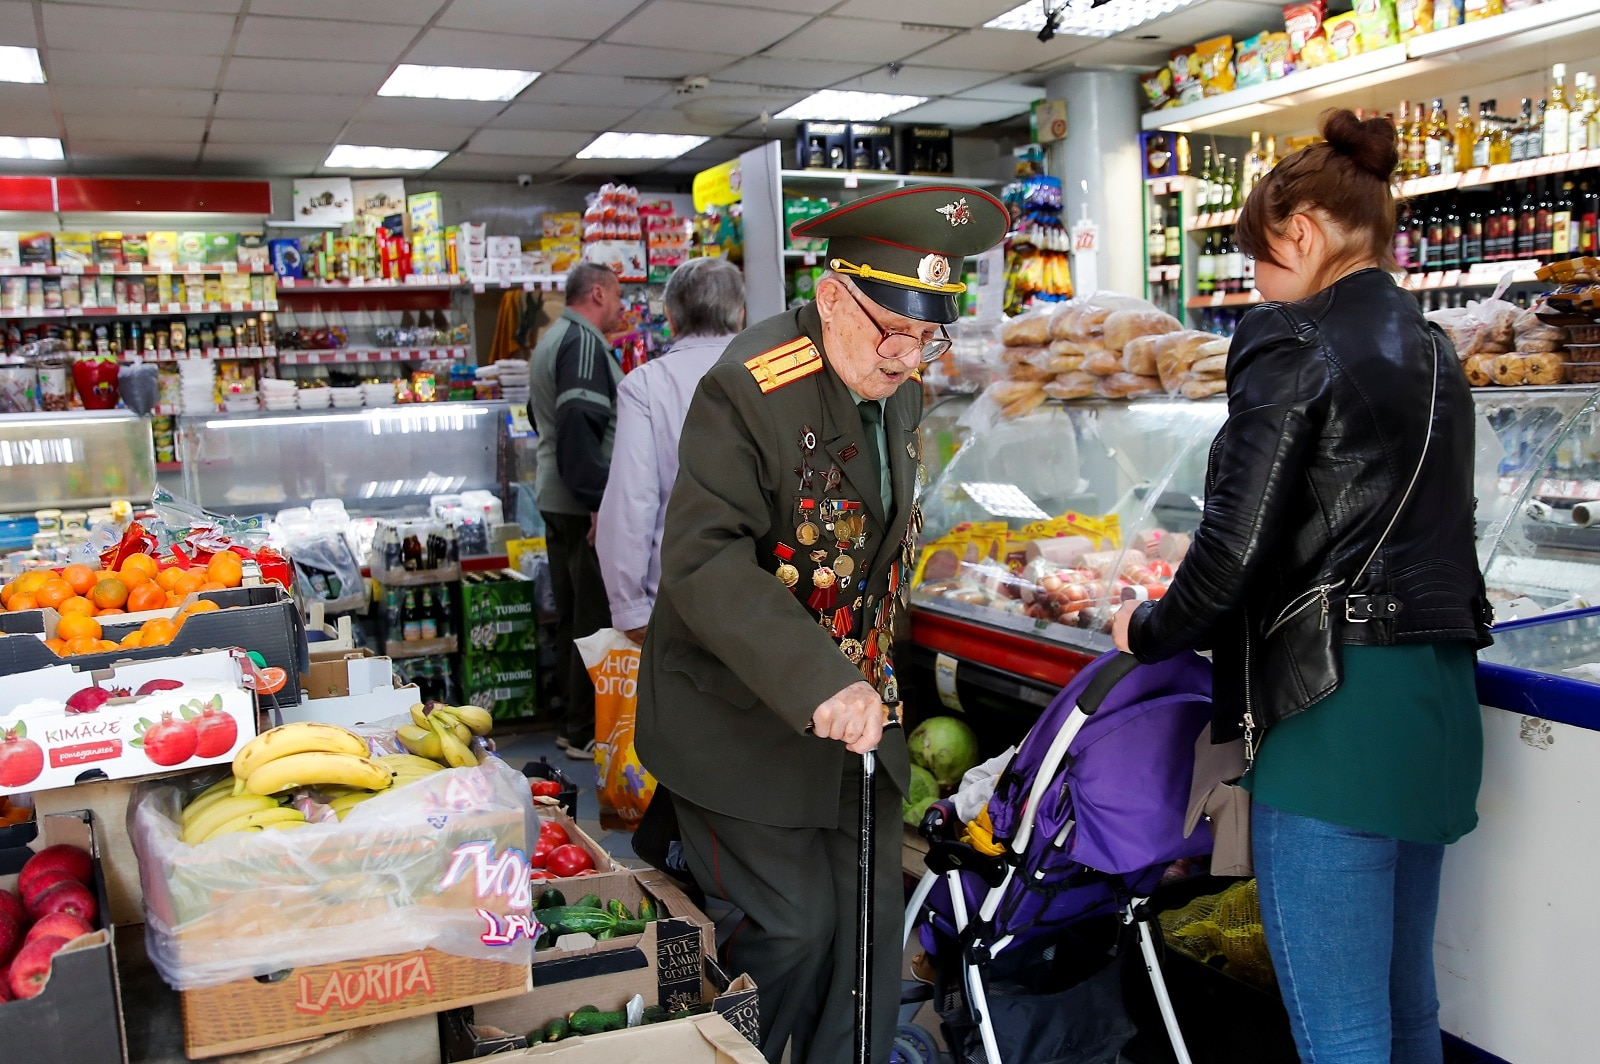 Veteran Nikolay Bagayev, 100, leaves a food store after May Day celebrations, in Korolyov, north of Moscow, Russia May 1, 2019. REUTERS/Maxim Shemetov